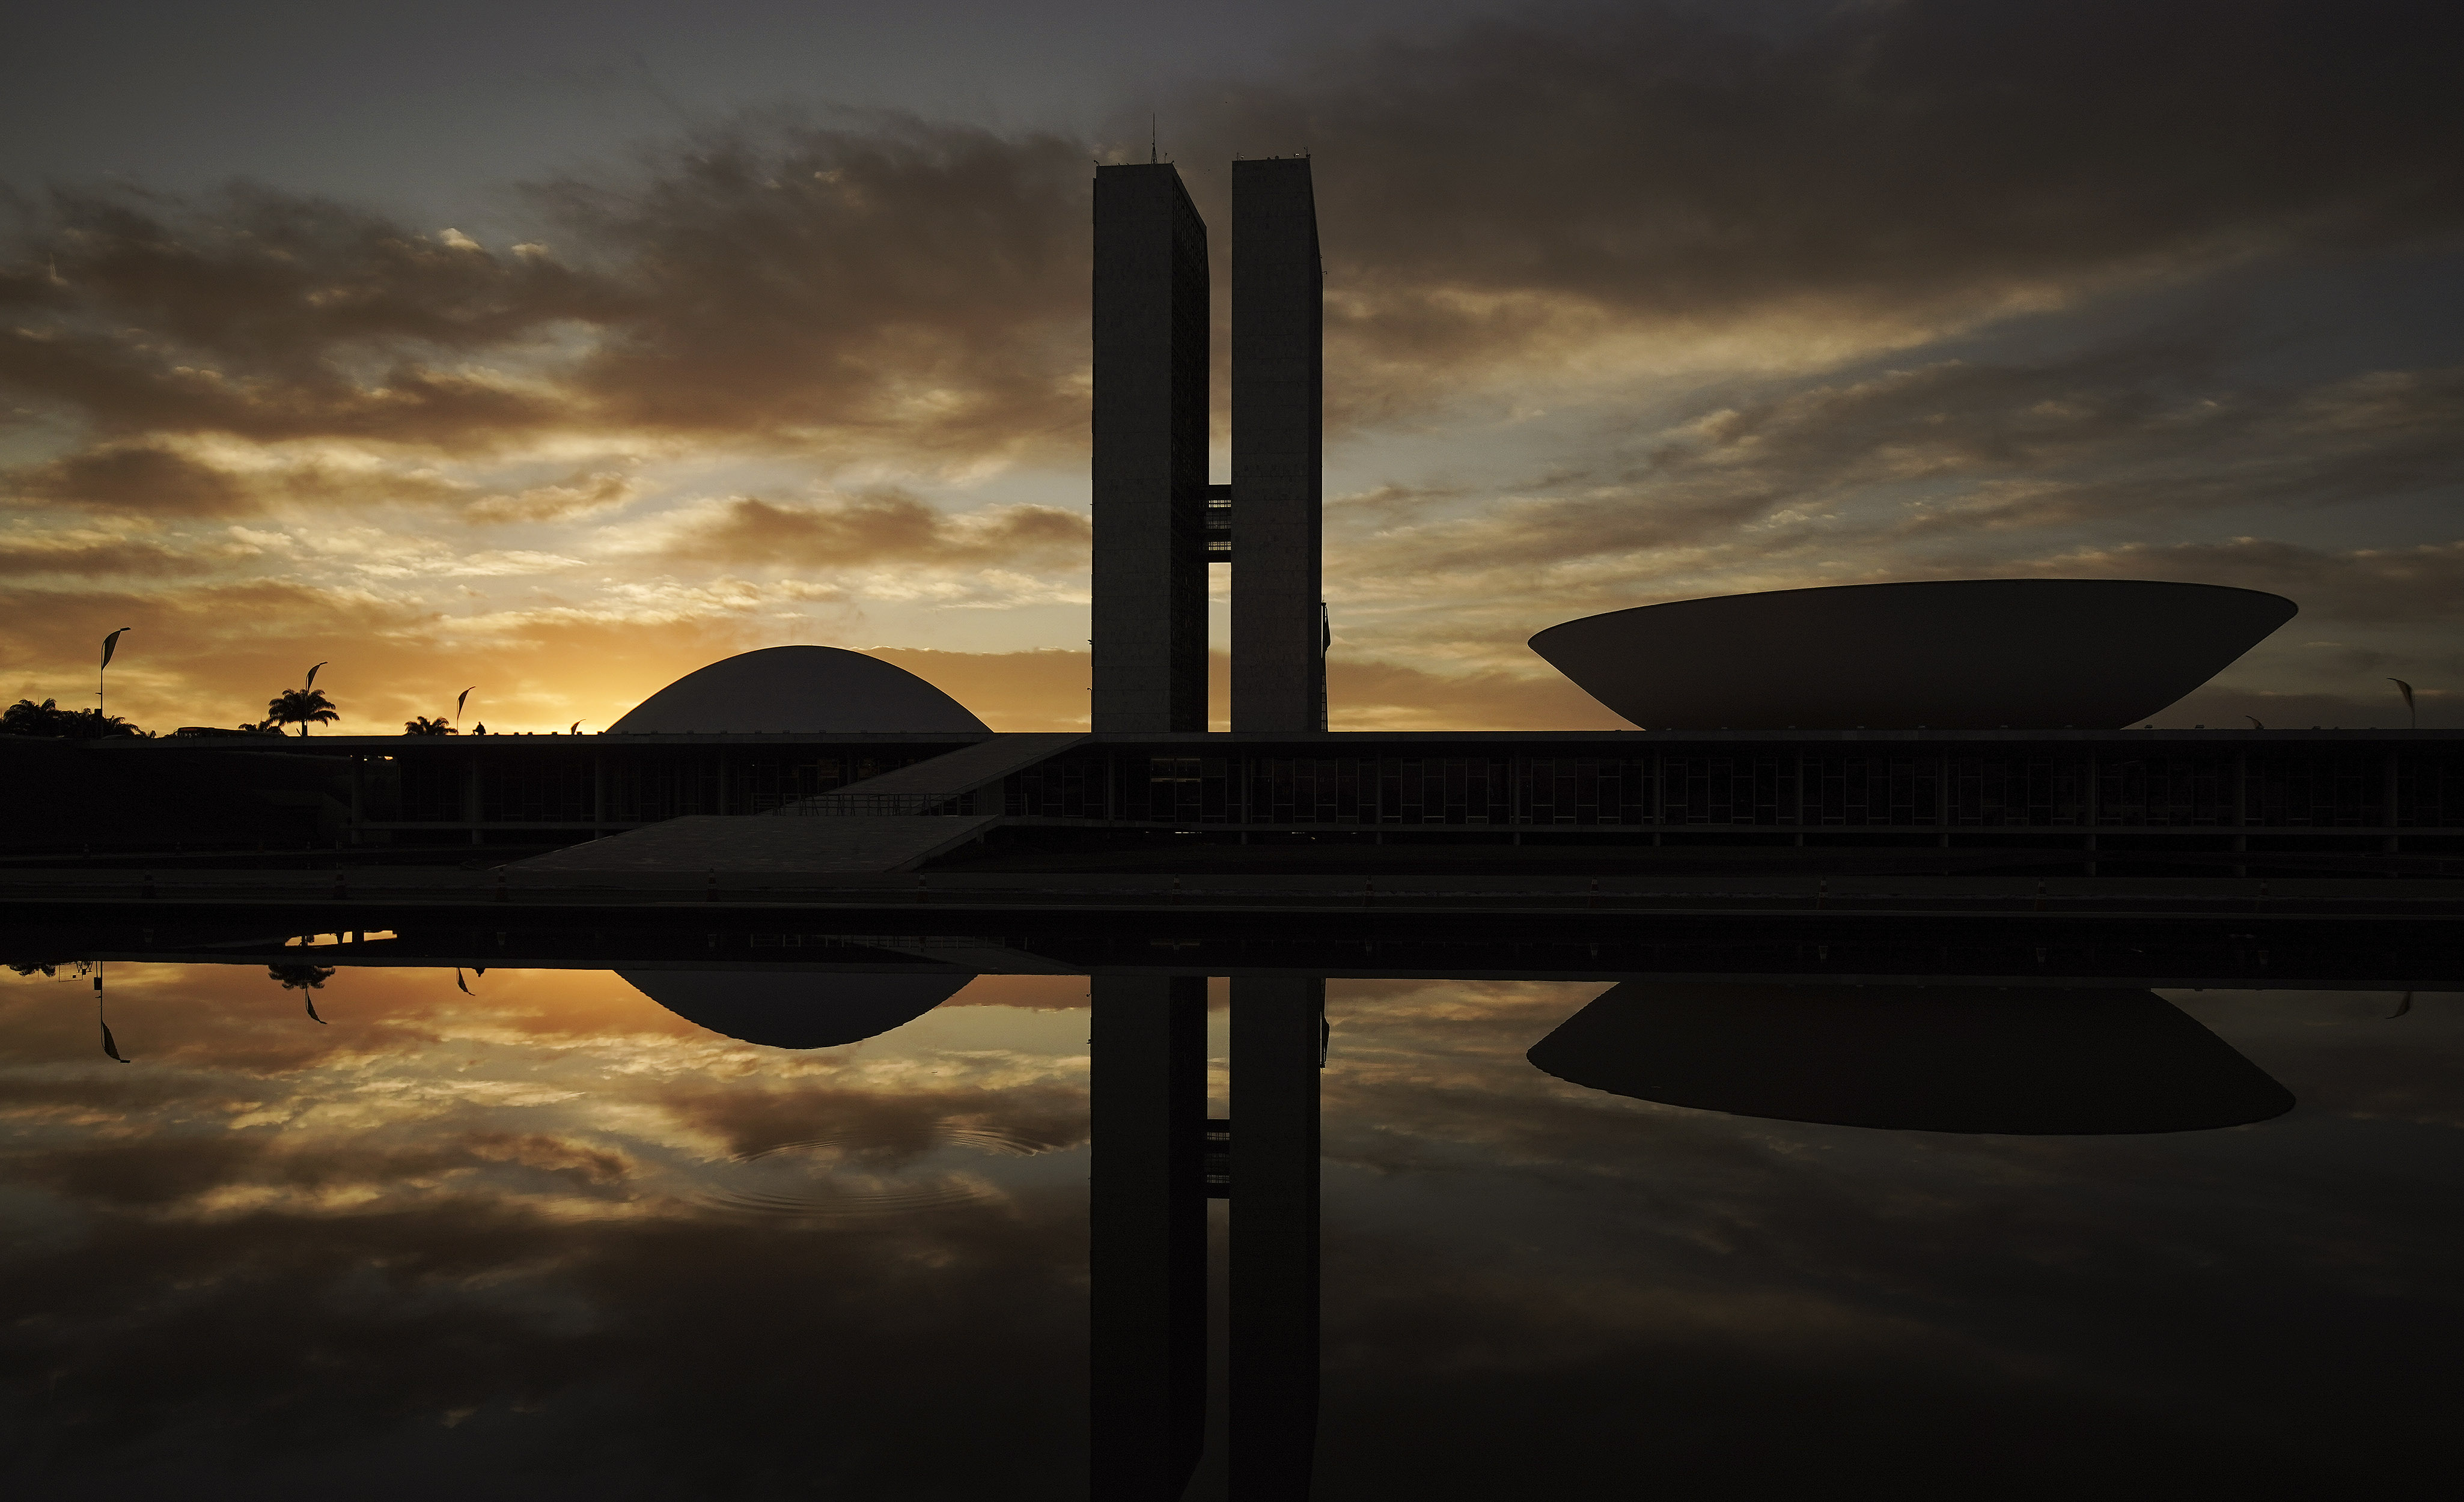 The National Congress of Brazil in Brasilia, Brazil, is pictured on Friday, Aug. 30, 2019.